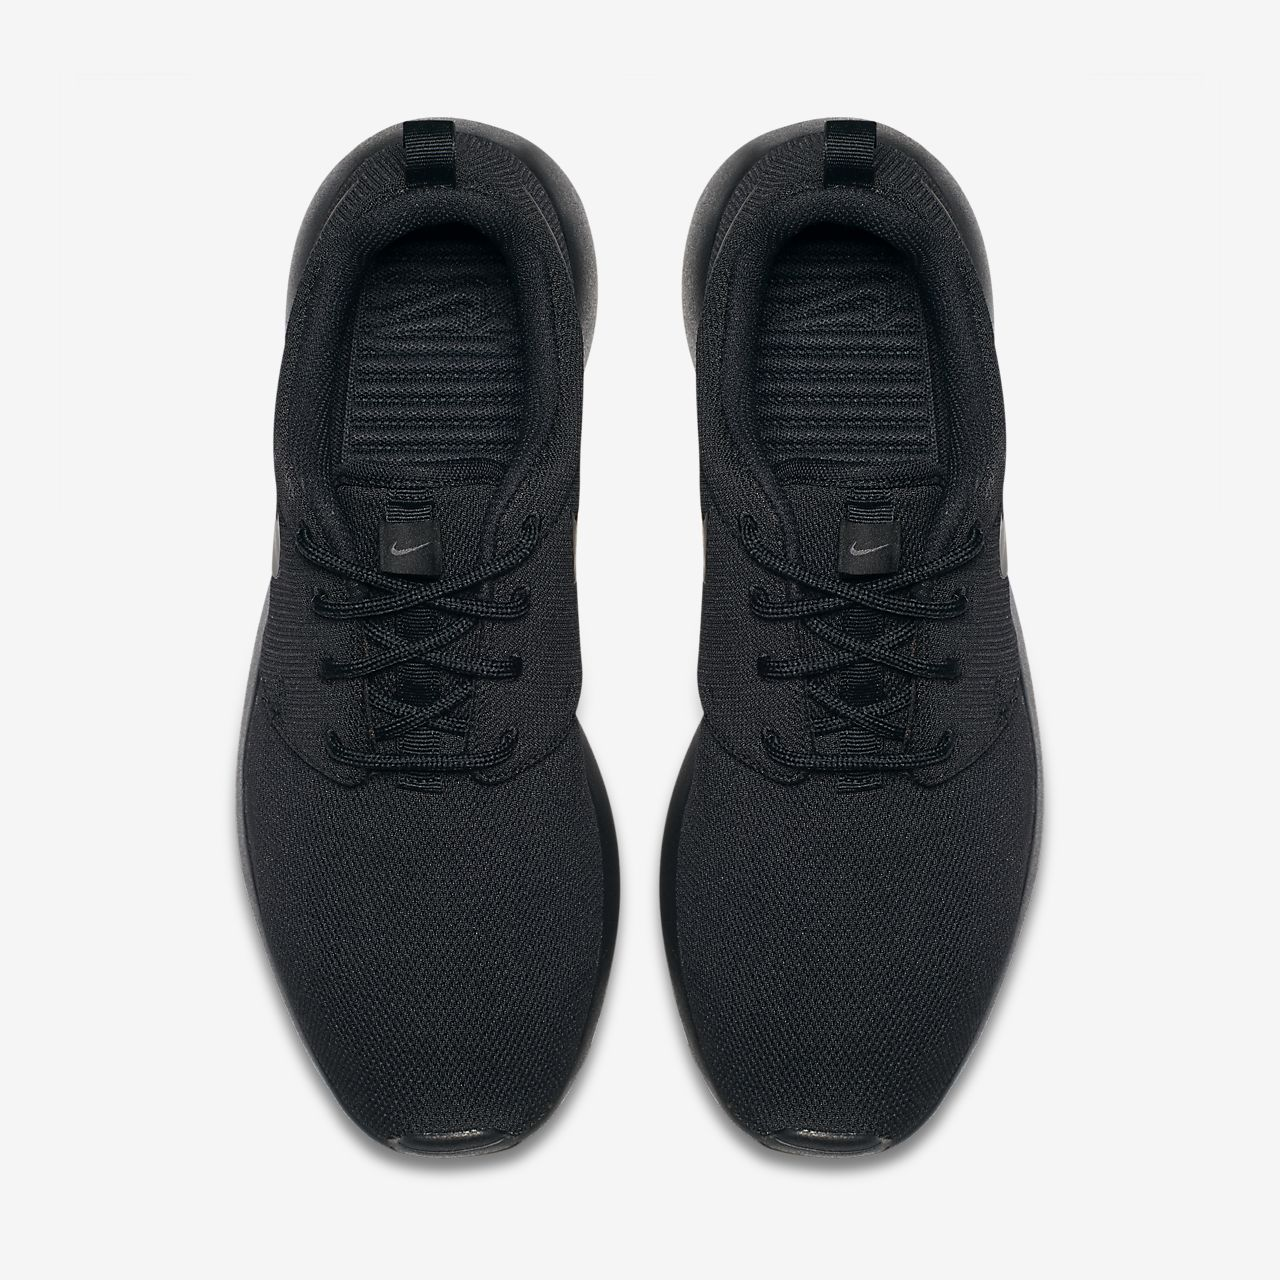 premium selection 257d4 b7713 ... Nike Roshe One Women s Shoe